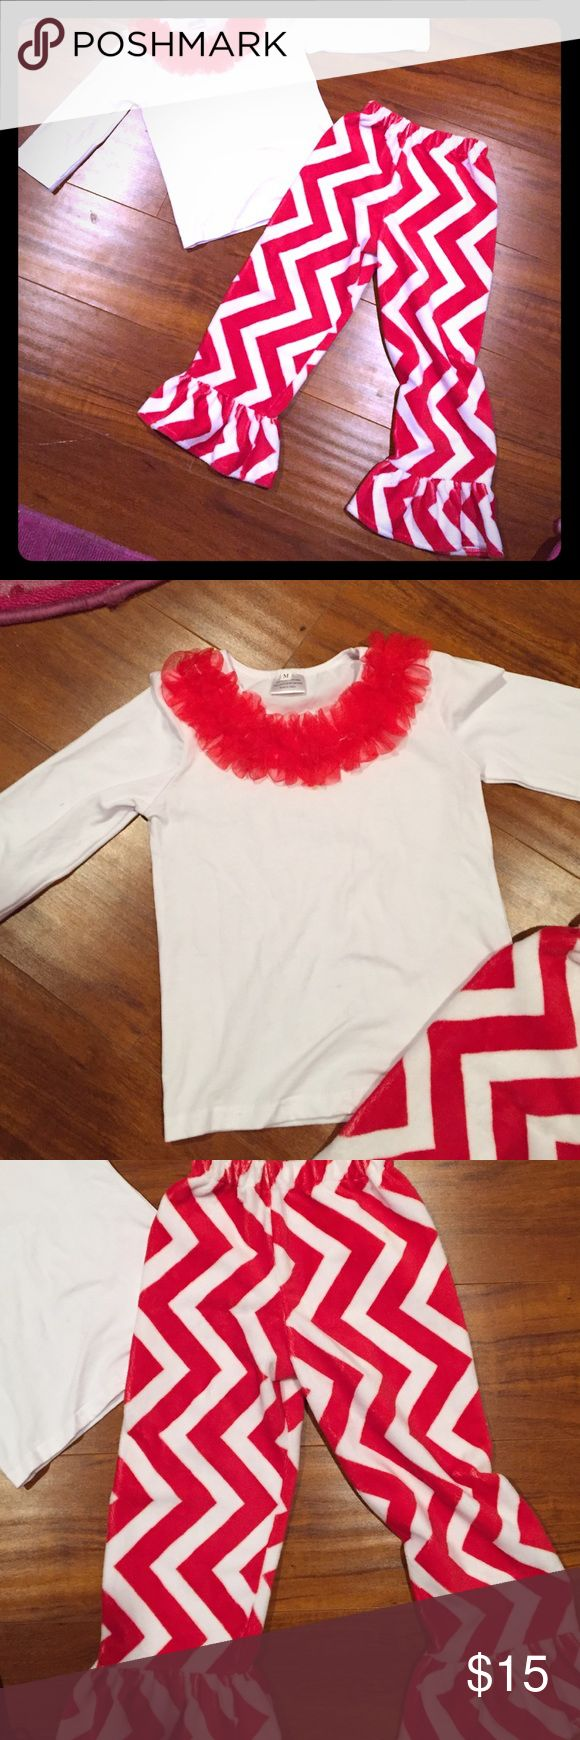 Girls 4t outfit🎄🎅🏼 Only worn once super cute fury comfy  chevron pants with cute fluffy shirt. Perfect for the upcoming Holidays😊🎄🎅🏼 Matching Sets